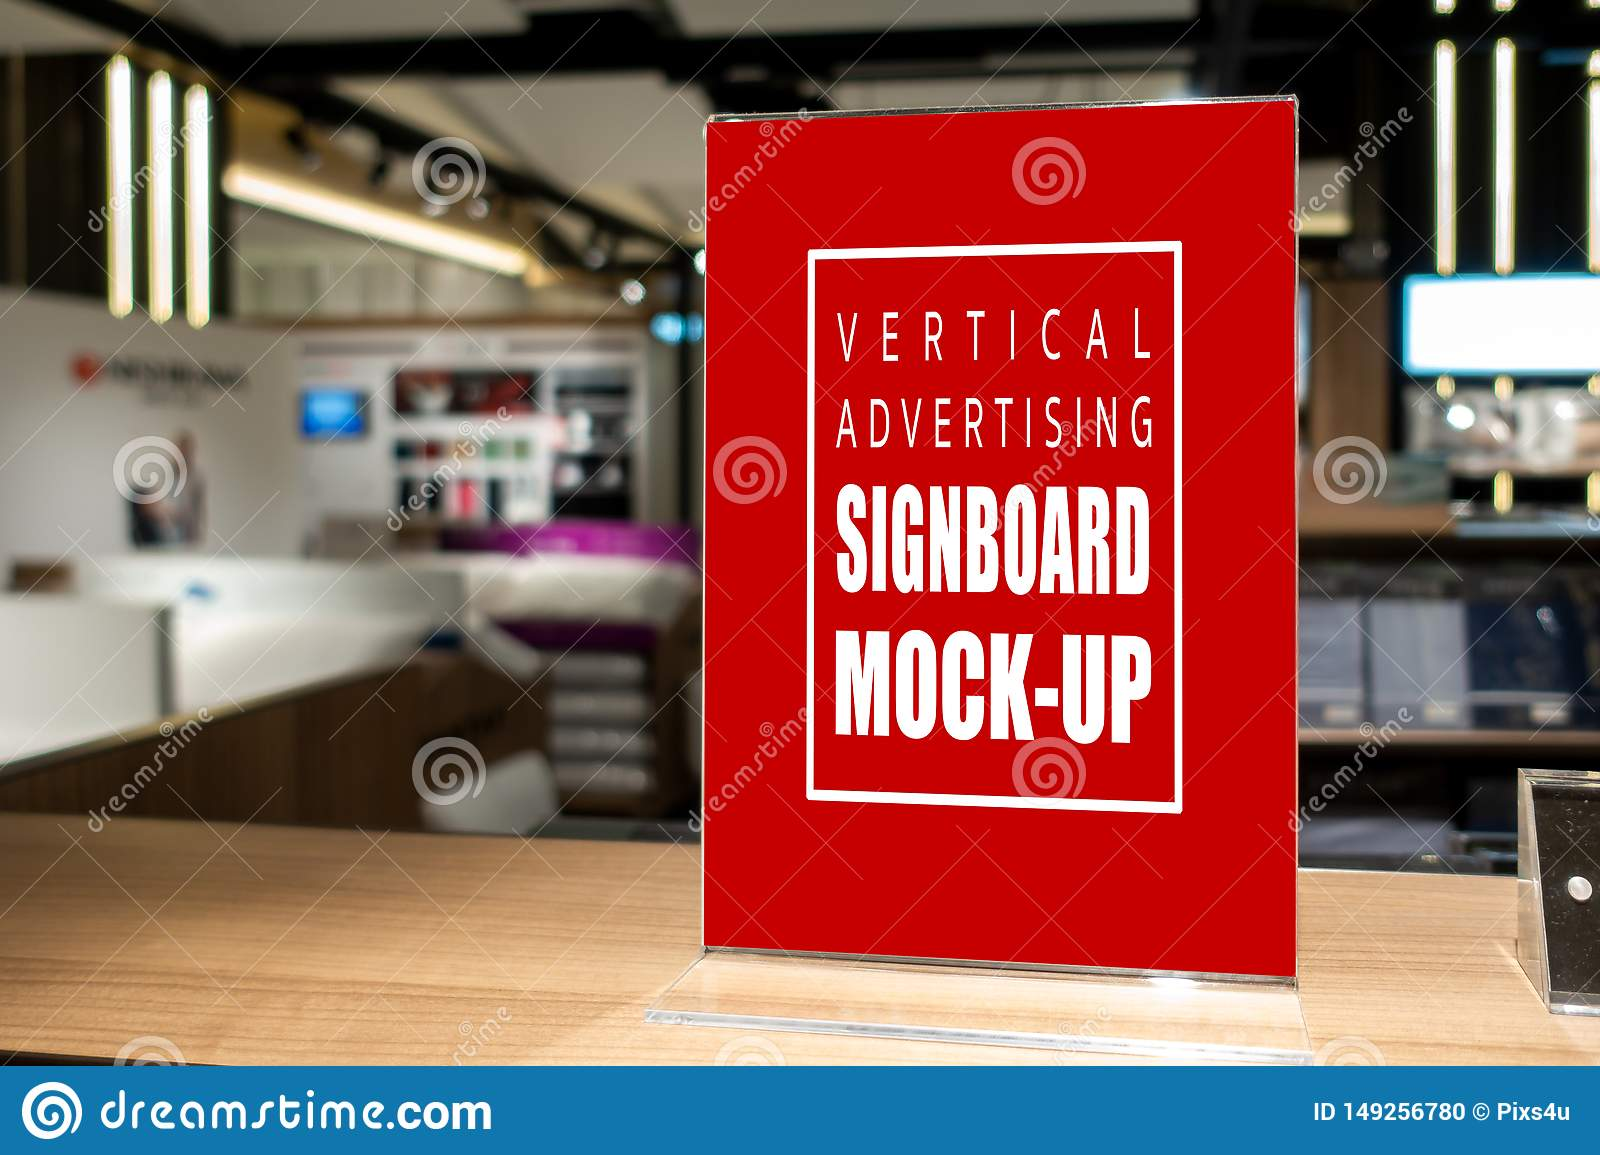 Mock Up Vertical Signboard With Acrylic Frame In Shop Stock Photo